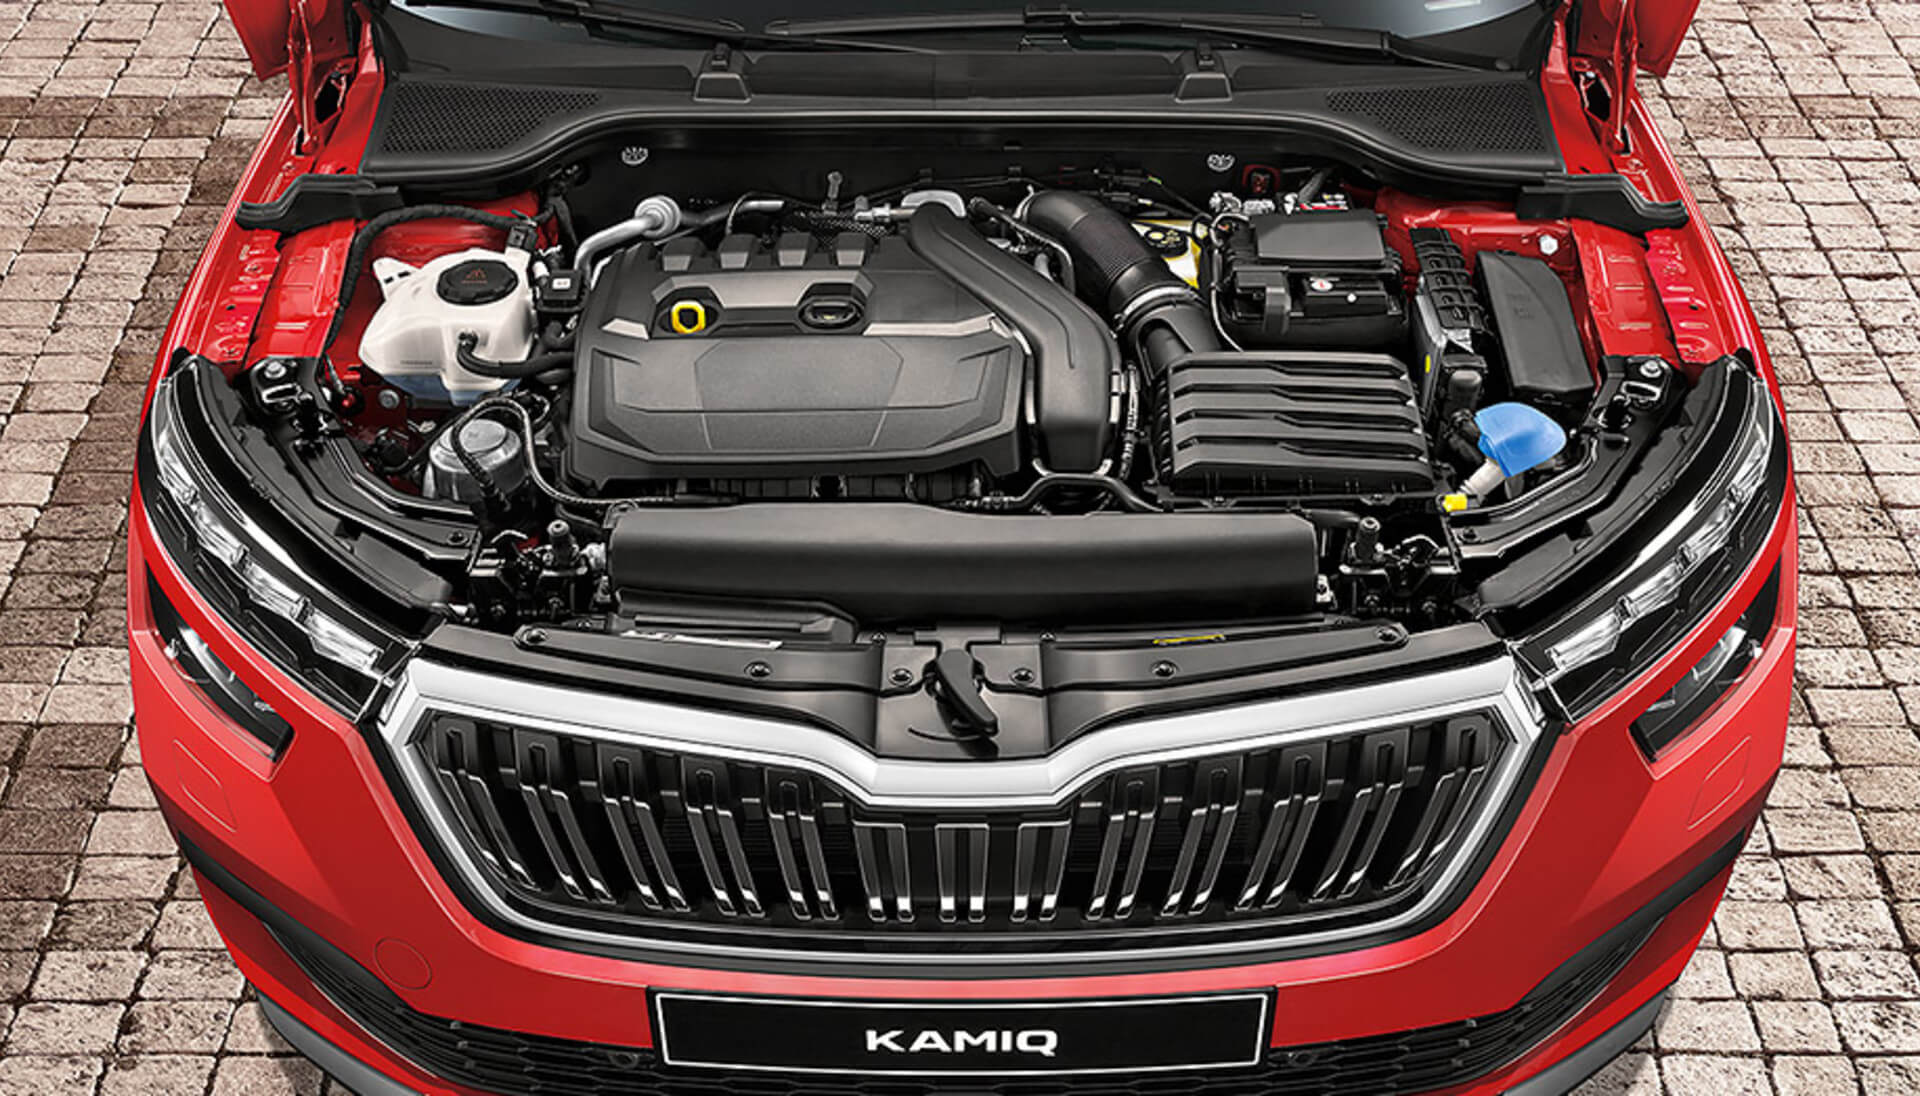 Kamiq Turbocharged Engine